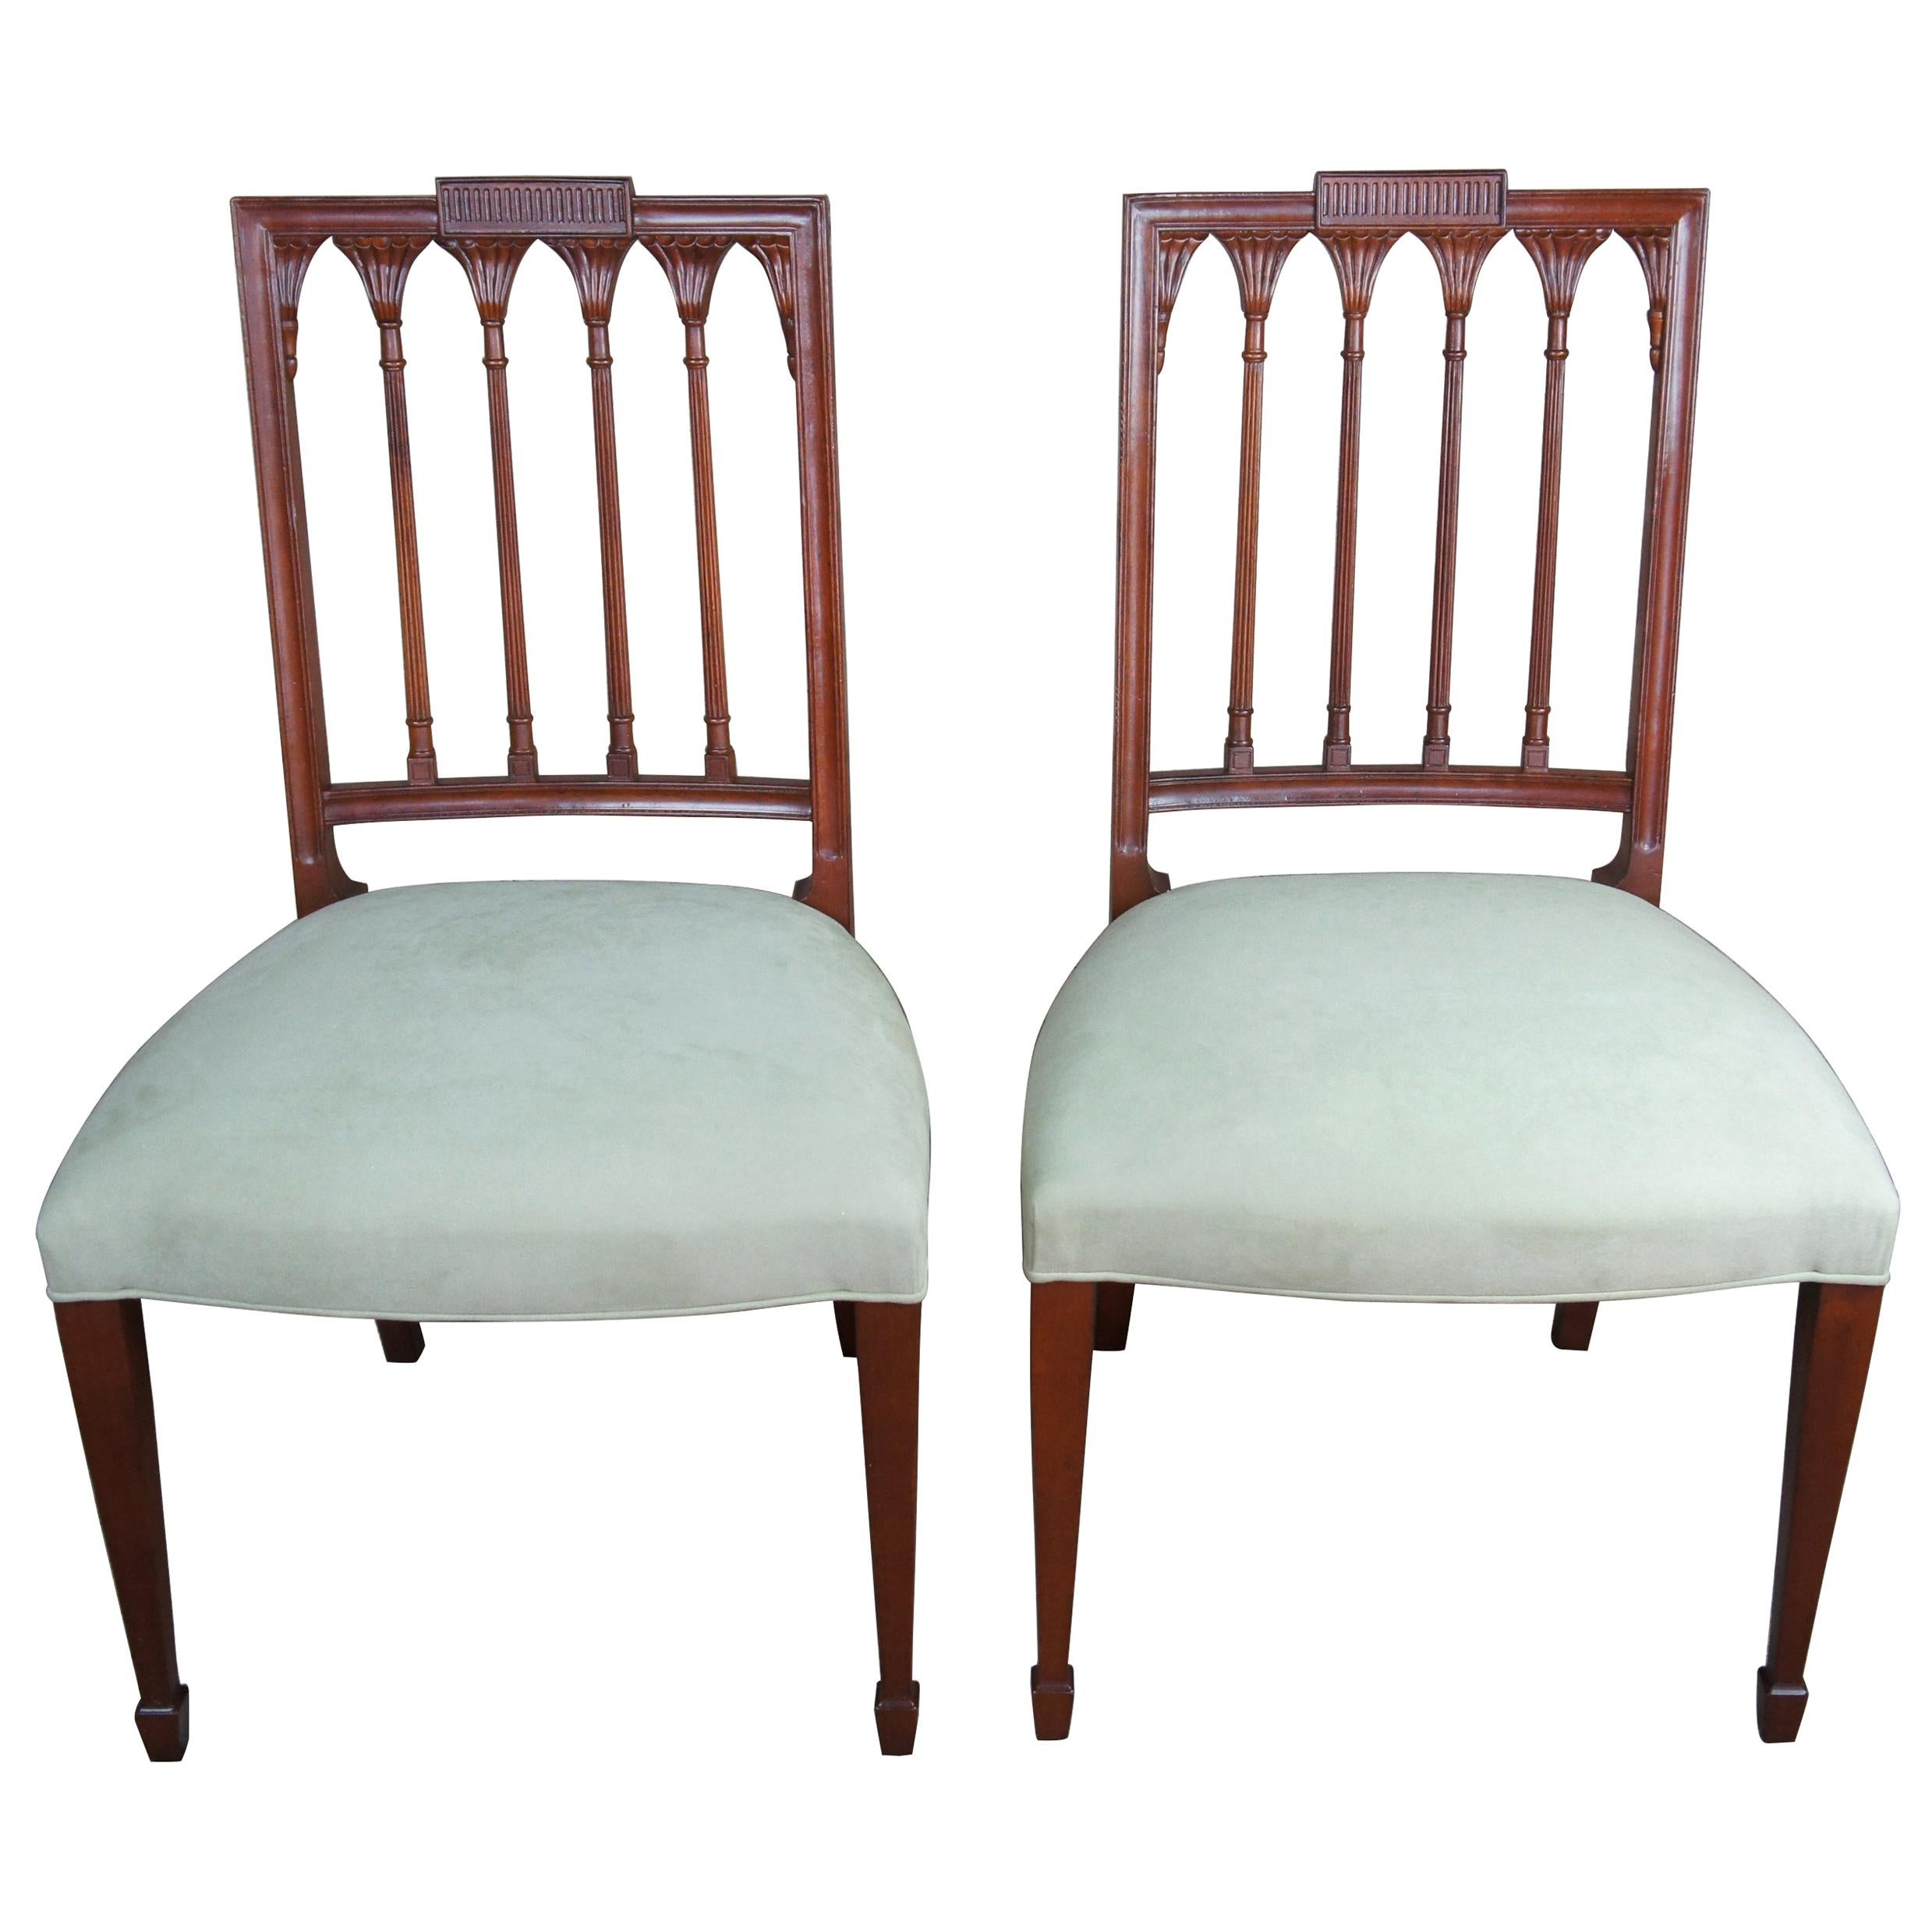 2 Baker Furniture Historic Charleston Russell Dining Chairs Mahogany Accent